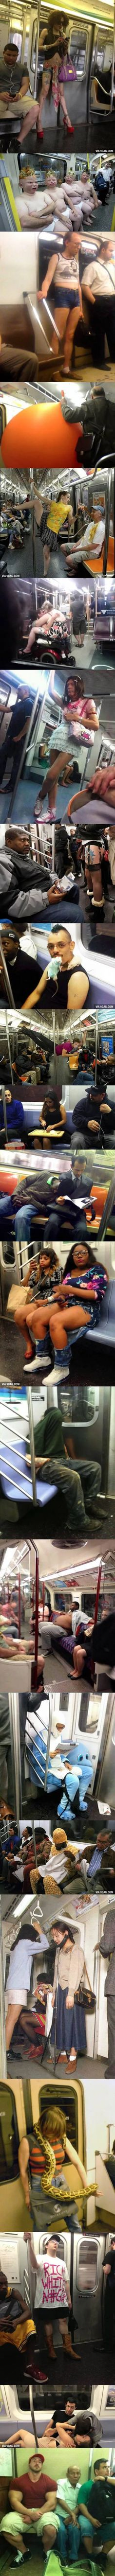 22 Photos That Show Why I Hate To Take The Subway! Wtf Funny, Funny Jokes, Hilarious, Best Funny Pictures, Funny Photos, Wtf Moments, U Bahn, Stupid People, Twisted Humor